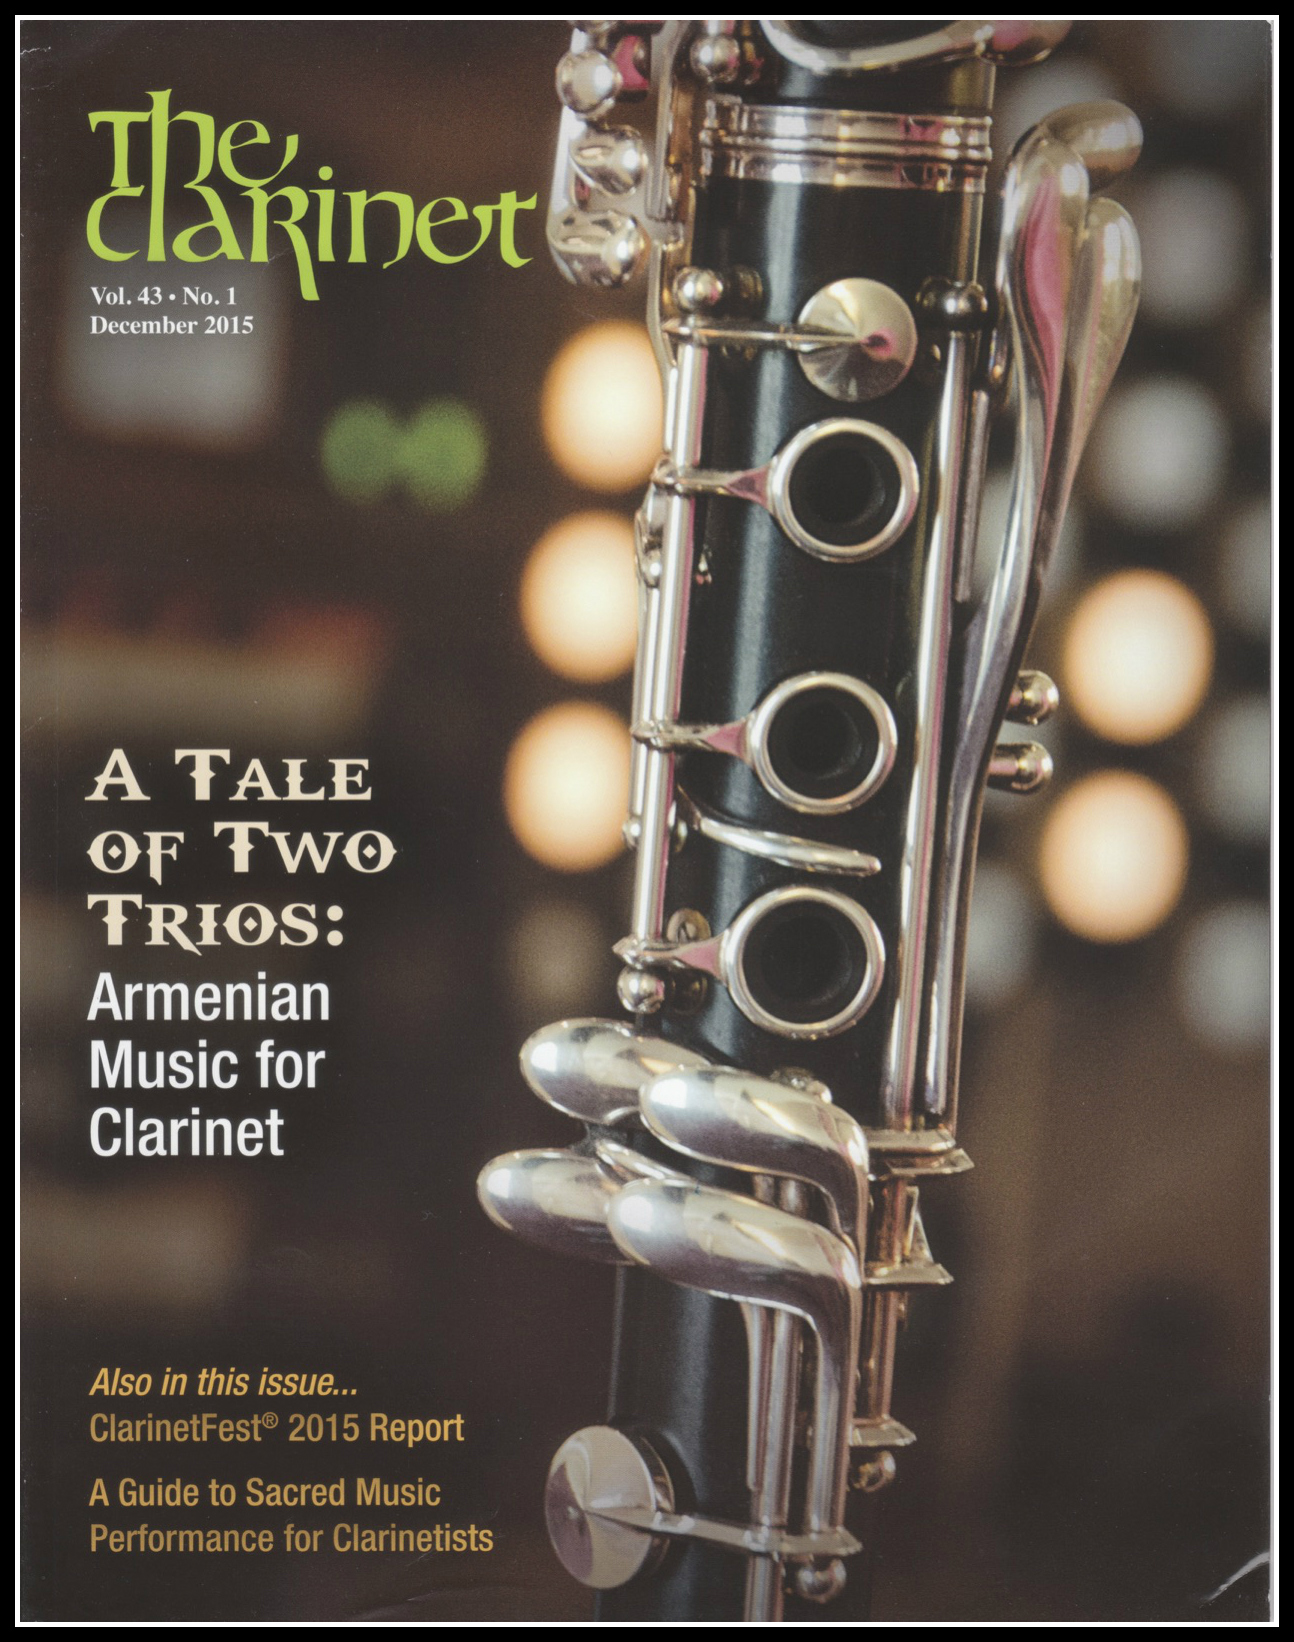 Check out the review of  Squeak Big: Practical Fundamentals for the Successful Clarinetist  from the December 2015 issue of  The Clarinet  (the journal of the International Clarinet Association).